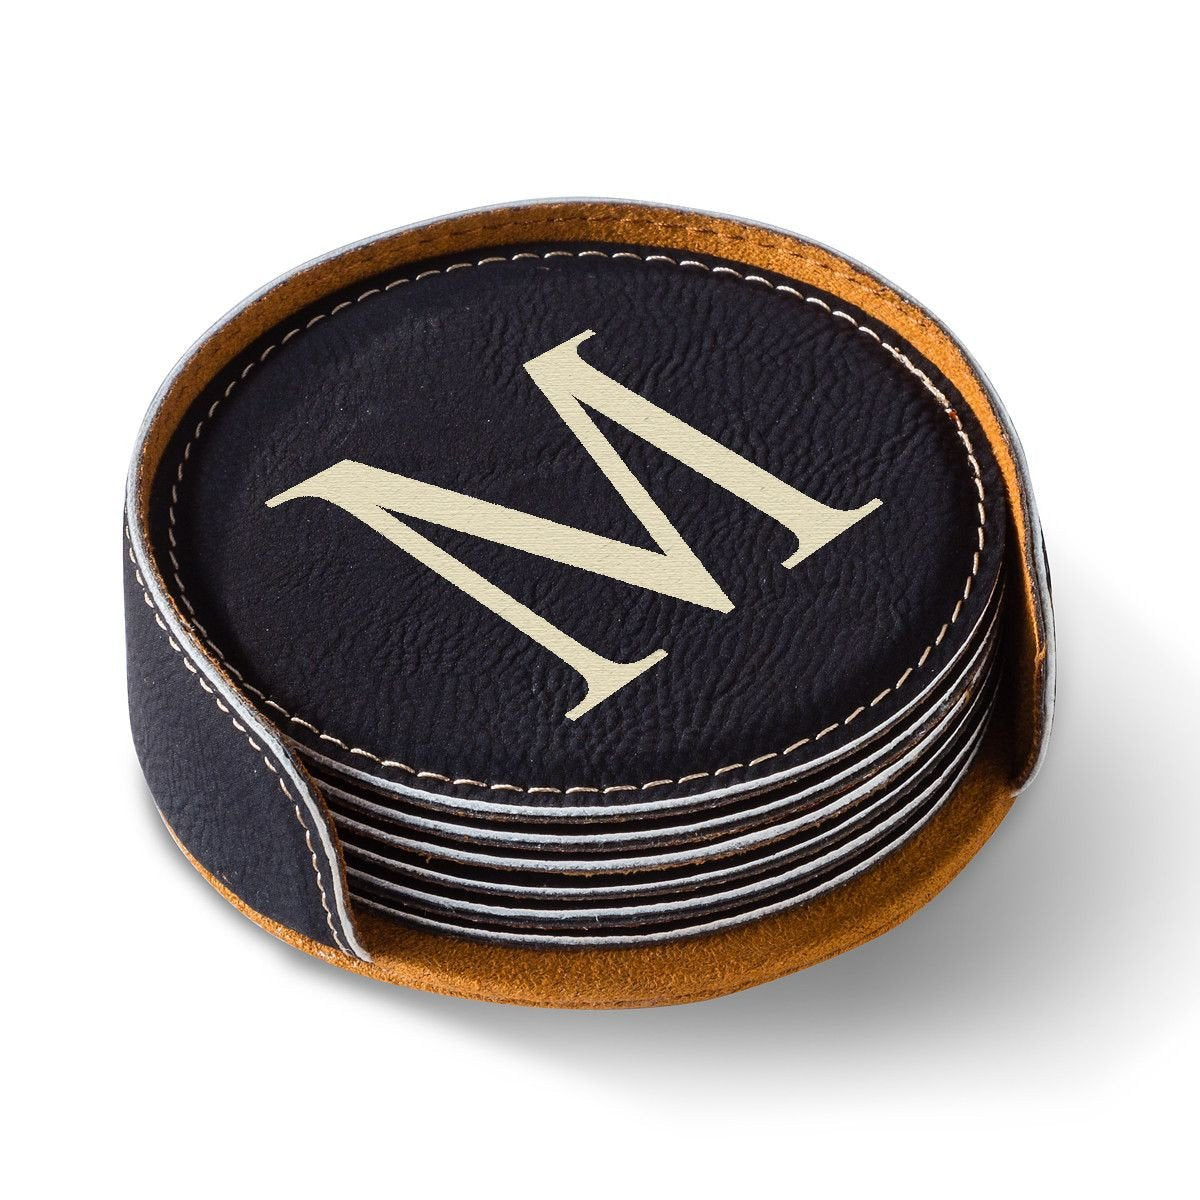 Personalized Round Vegan Leather Coaster Set - Black, Dark Brown, Light Brown, and Rawhide